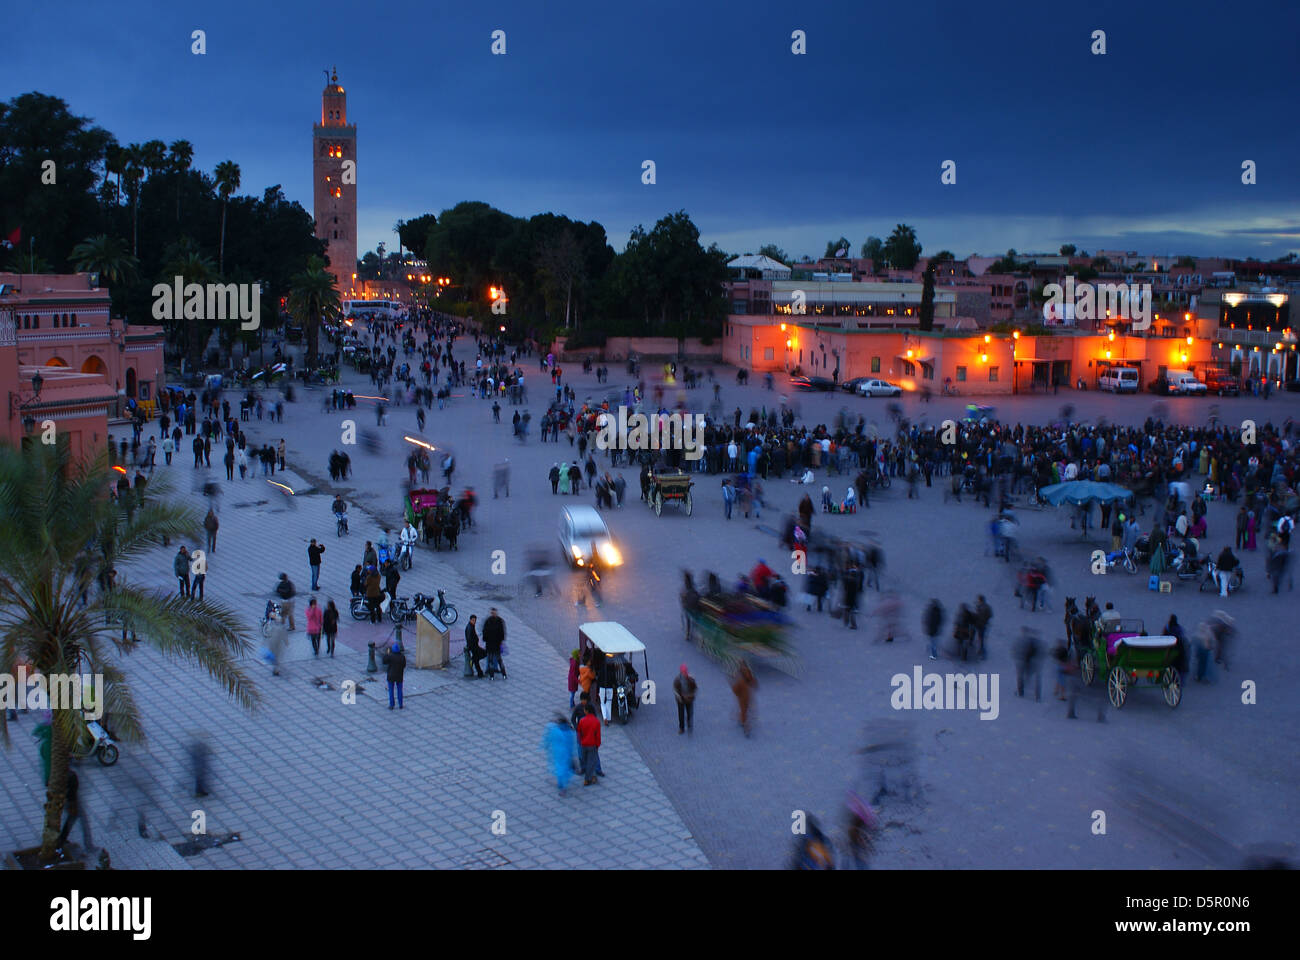 Djemaa el Fna, the main square in Marrakech, Morocco, at dusk, with the minaret of the Koutoubia Mosque in the background. Stock Photo